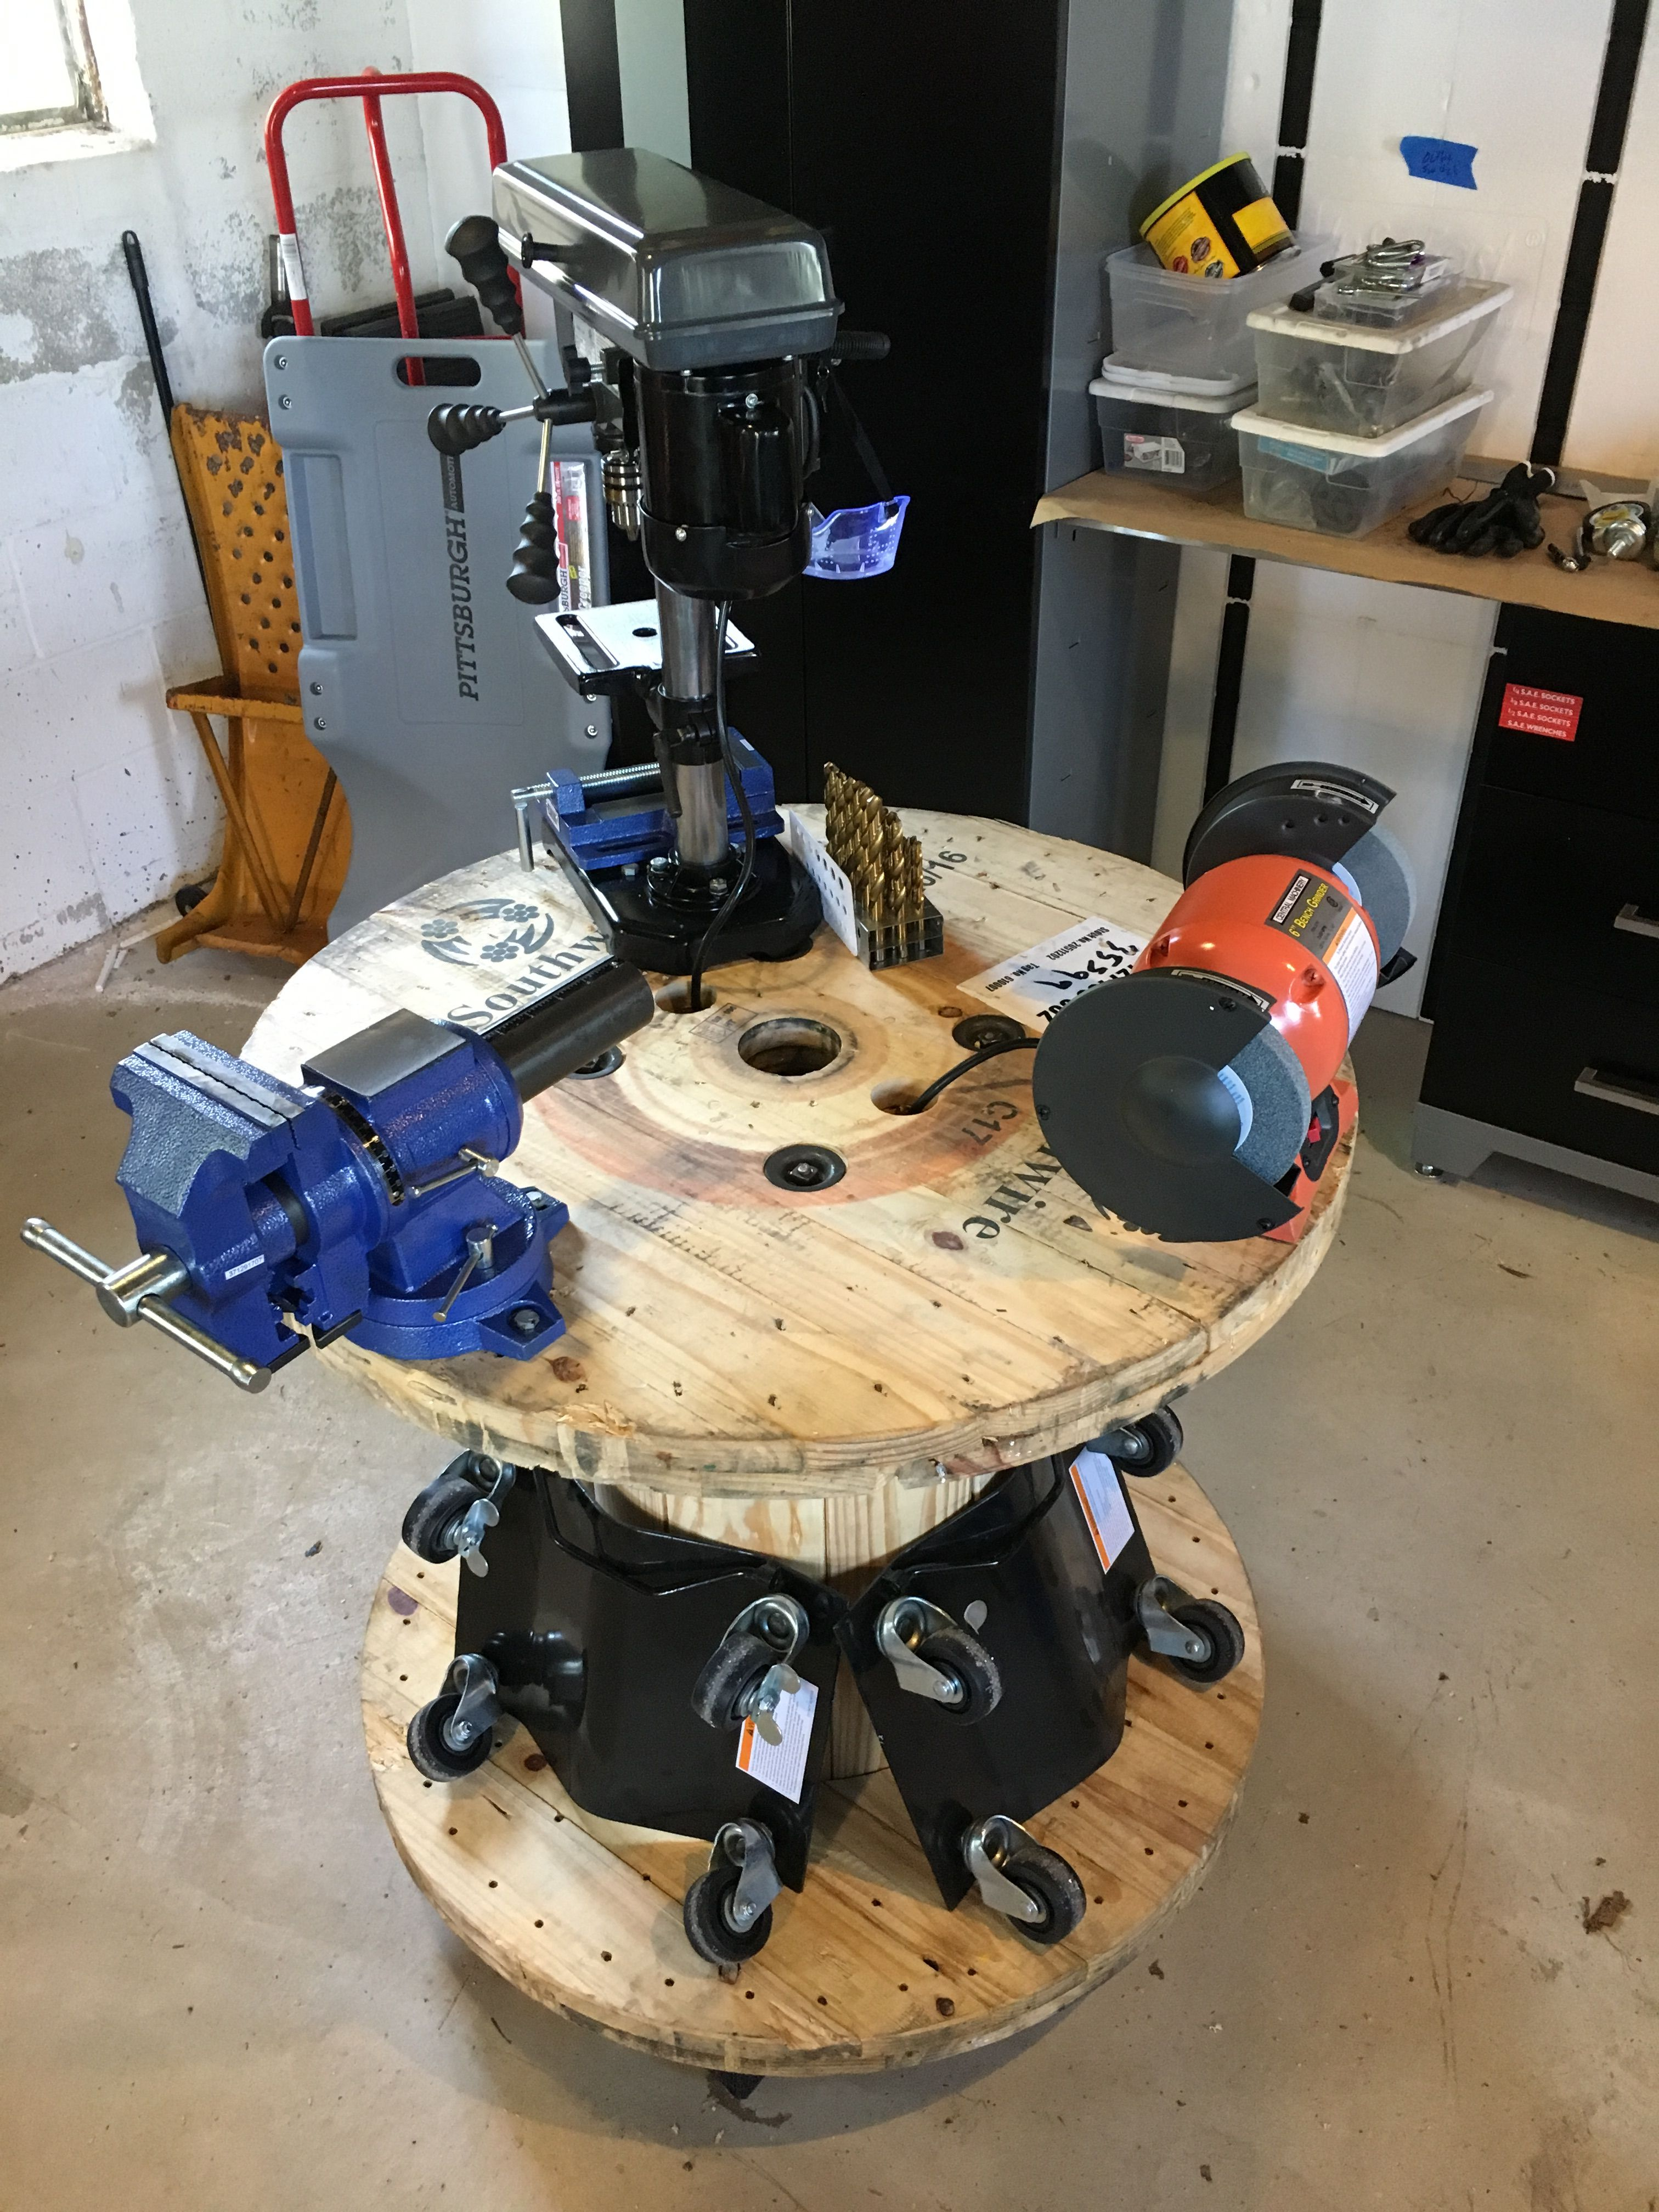 Remarkable Cable Spool Rolling Workbench For Various Projects Two Alphanode Cool Chair Designs And Ideas Alphanodeonline